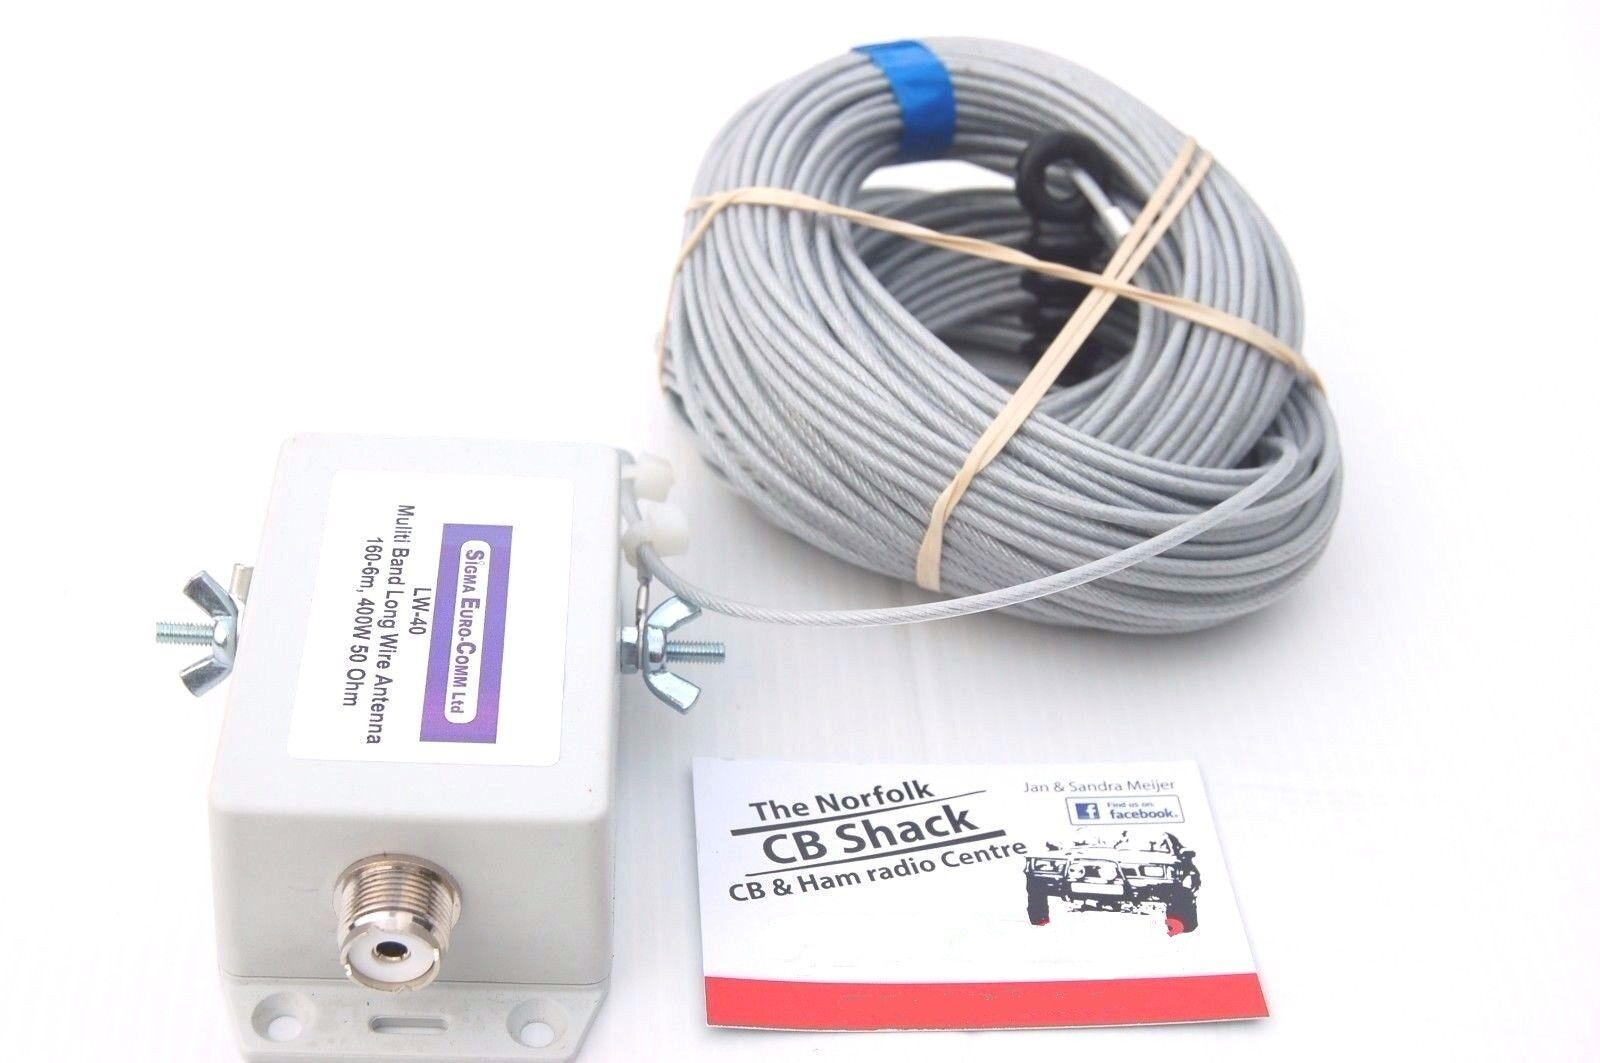 LW40 HF 160 - 6m Multiband Long Wire Top band Antenna / Aerial ...